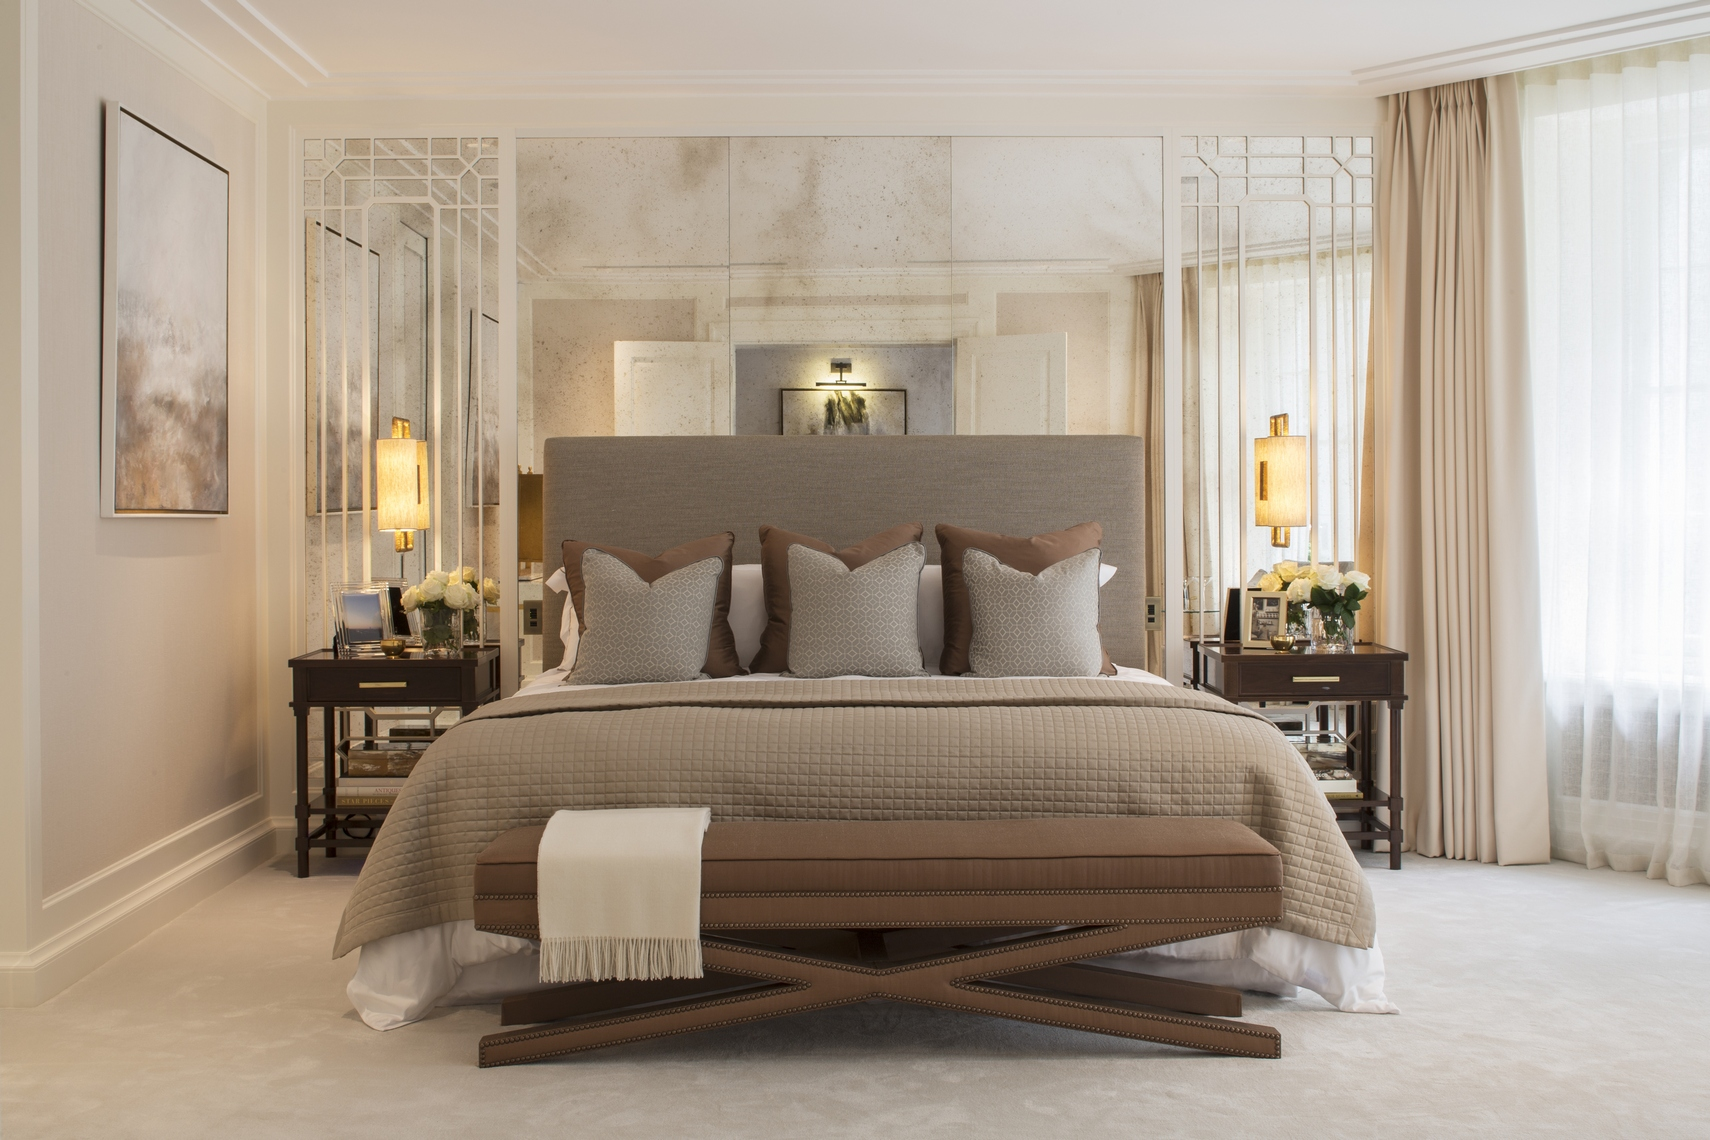 Bedroom Design Ideas And Colour Combos To Get Inspired By (3) bedroom design Bedroom Design Ideas And Colour Combos To Get Inspired By Bedroom Design Ideas And Colour Combos To Get Inspired By 3